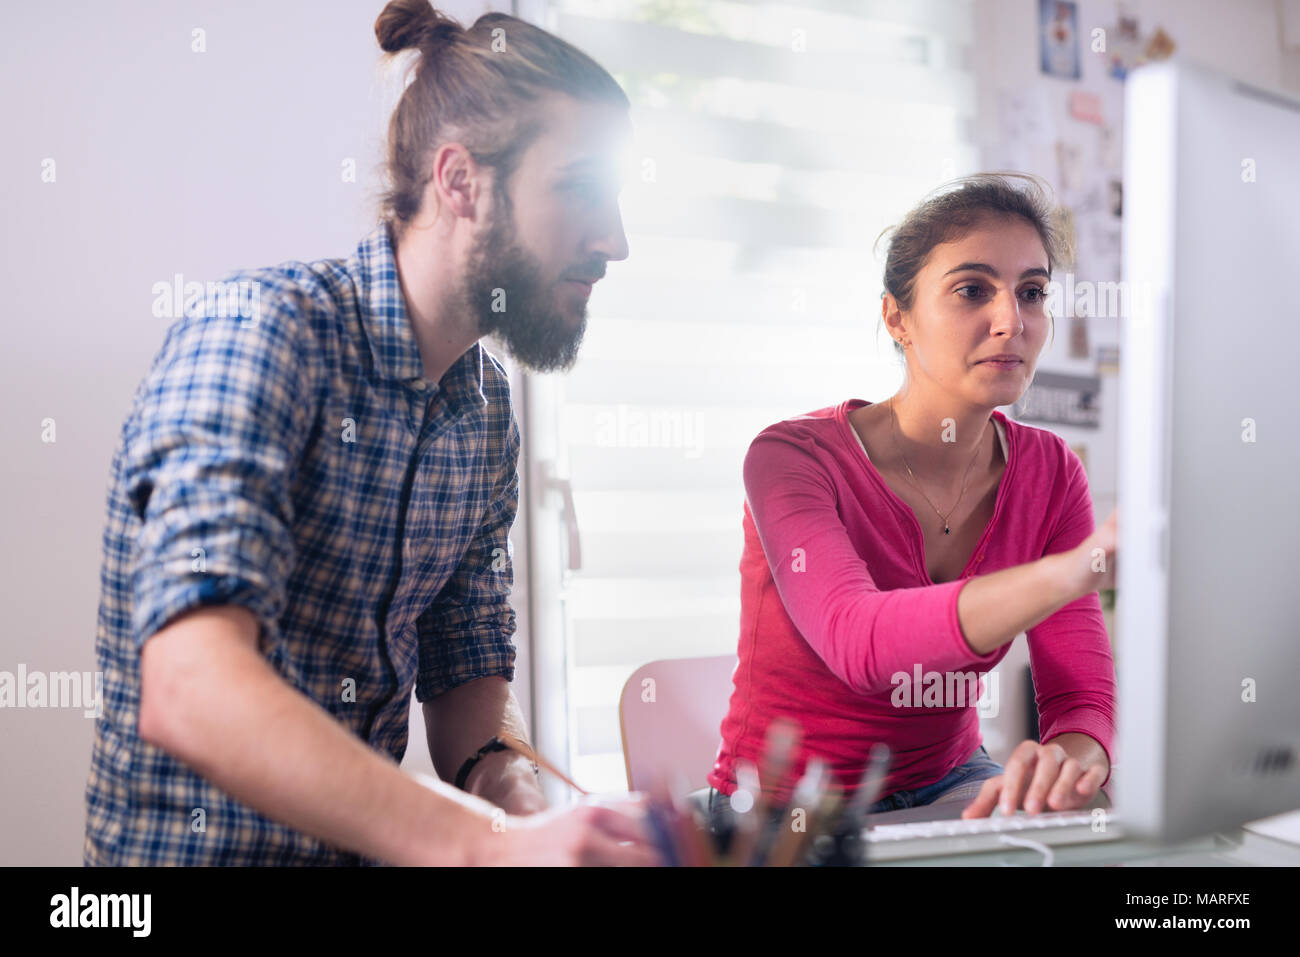 Two colleagues, man and woman sharing ideas about a project - Stock Image